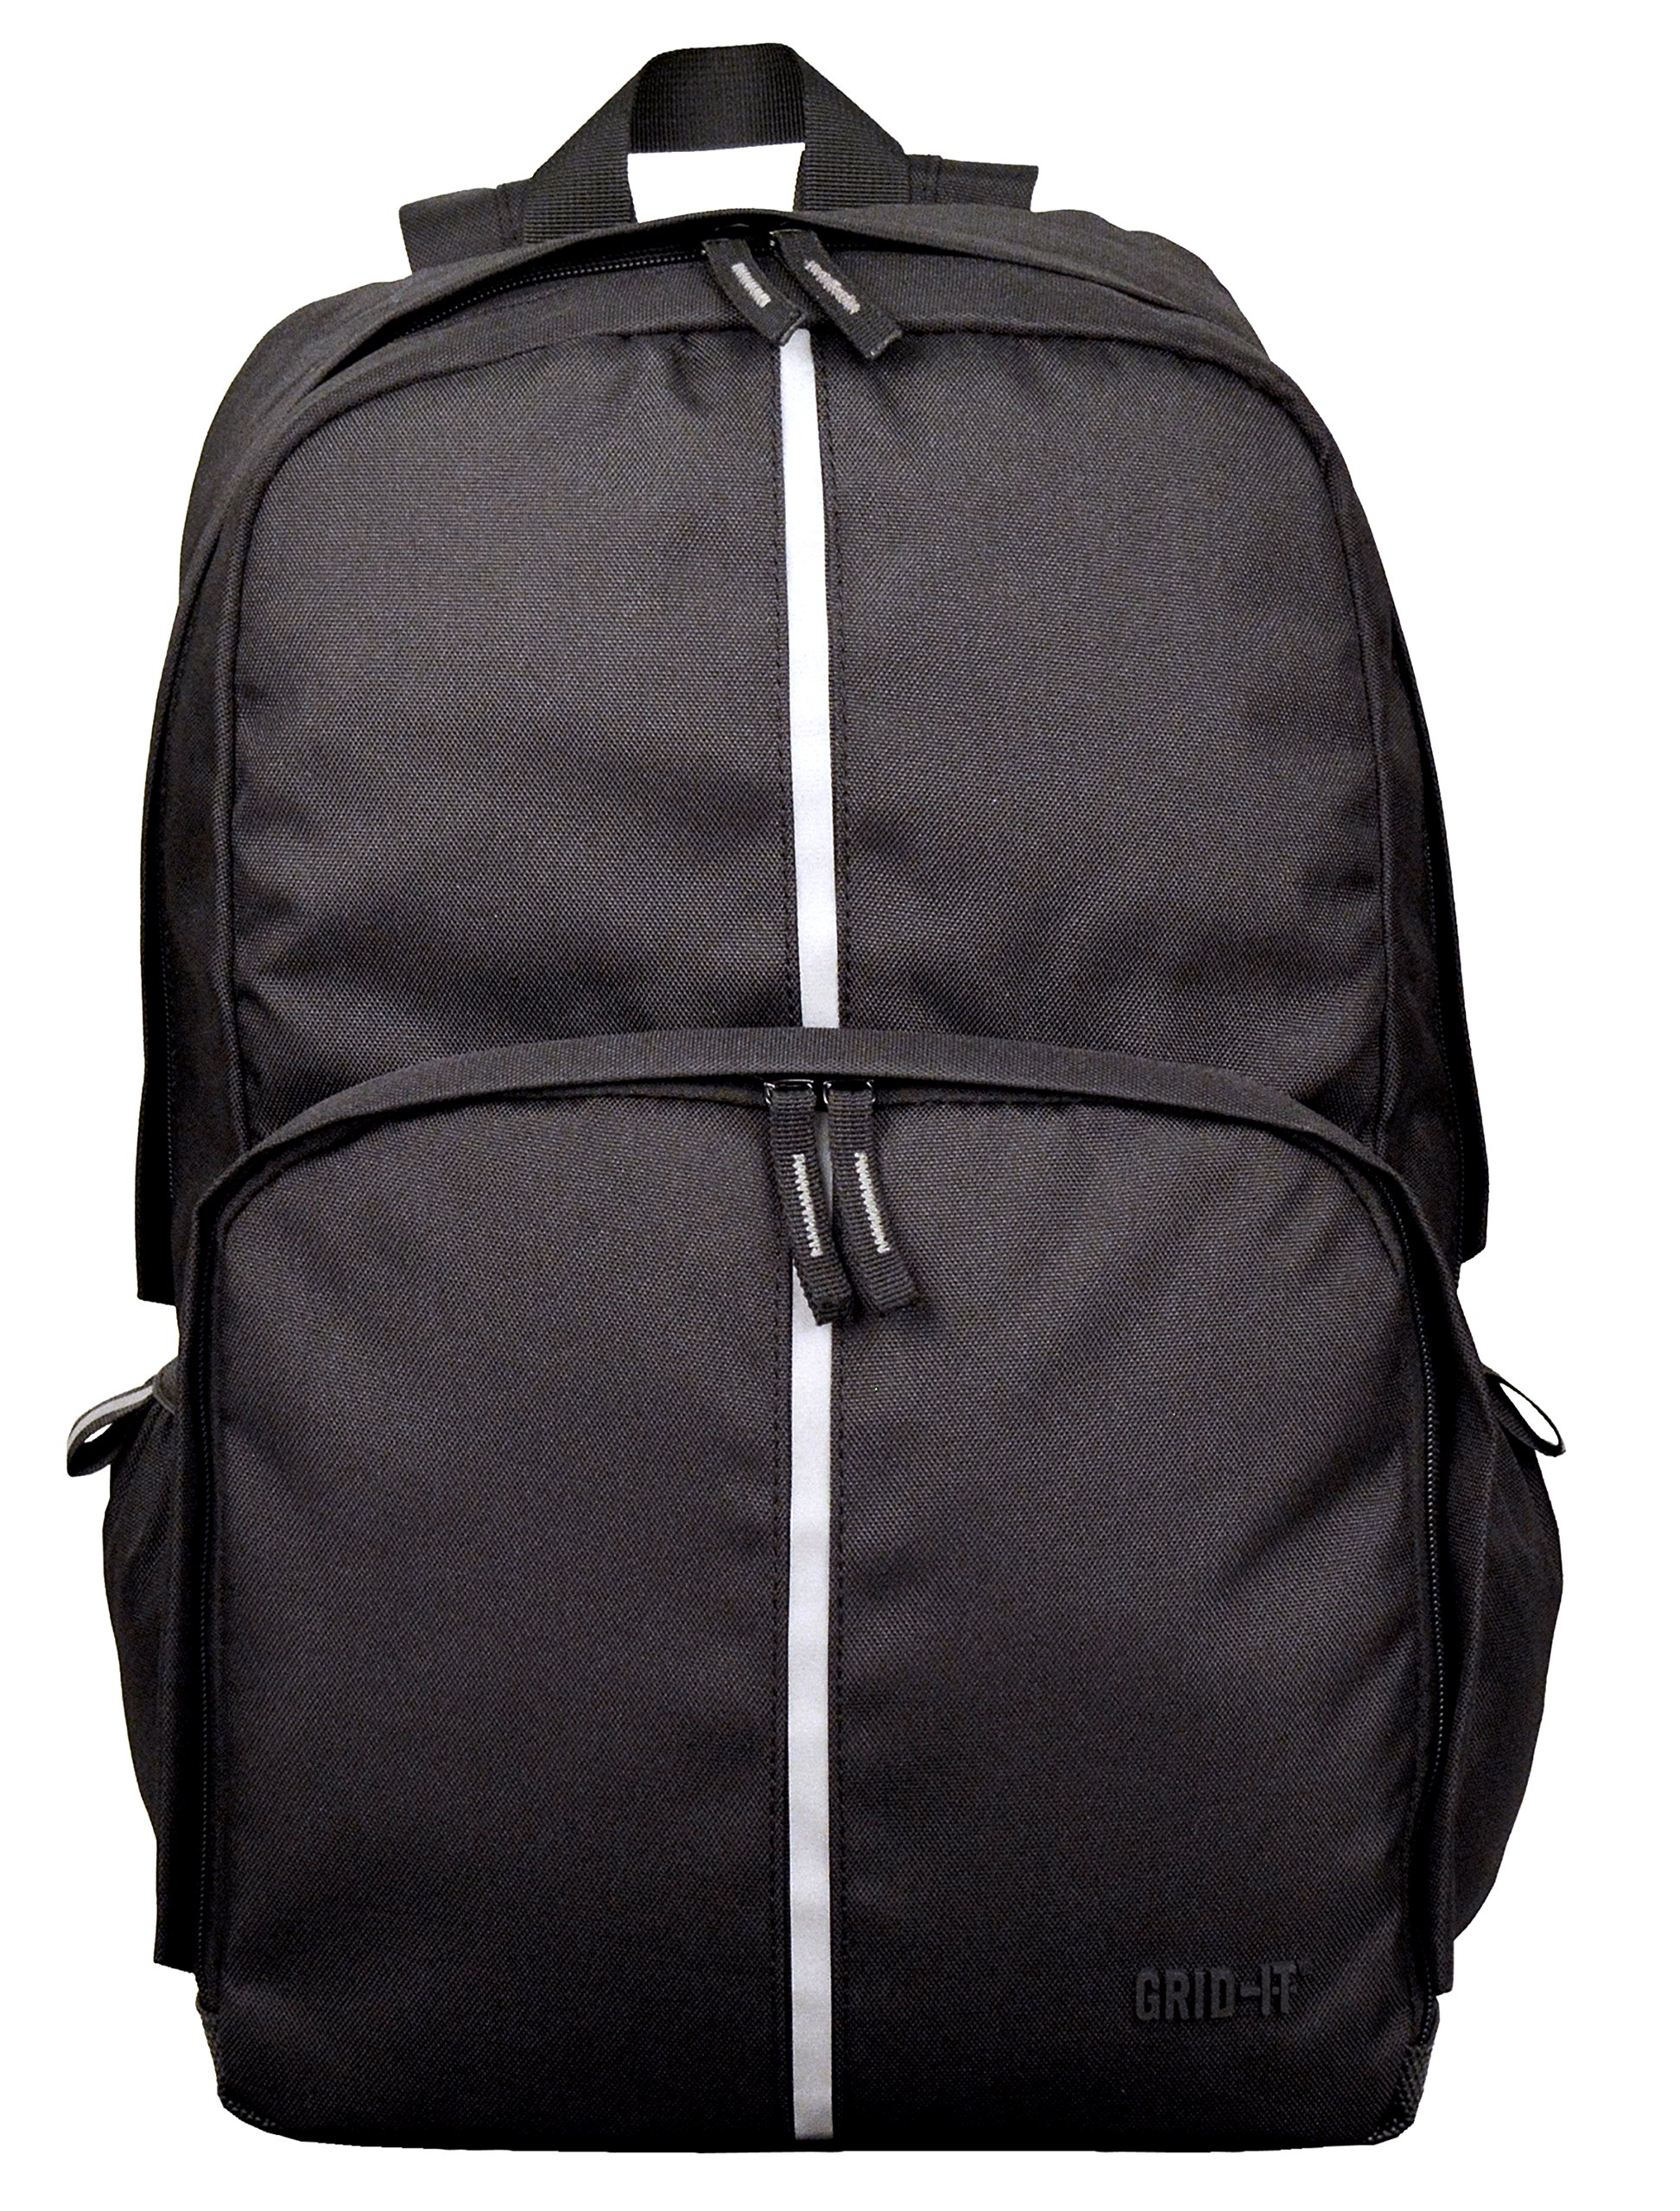 "Cocoon CBP3851BK Elementary 15"" Backpack with Built-in GRID-IT! Accessory Organizer (Black)"